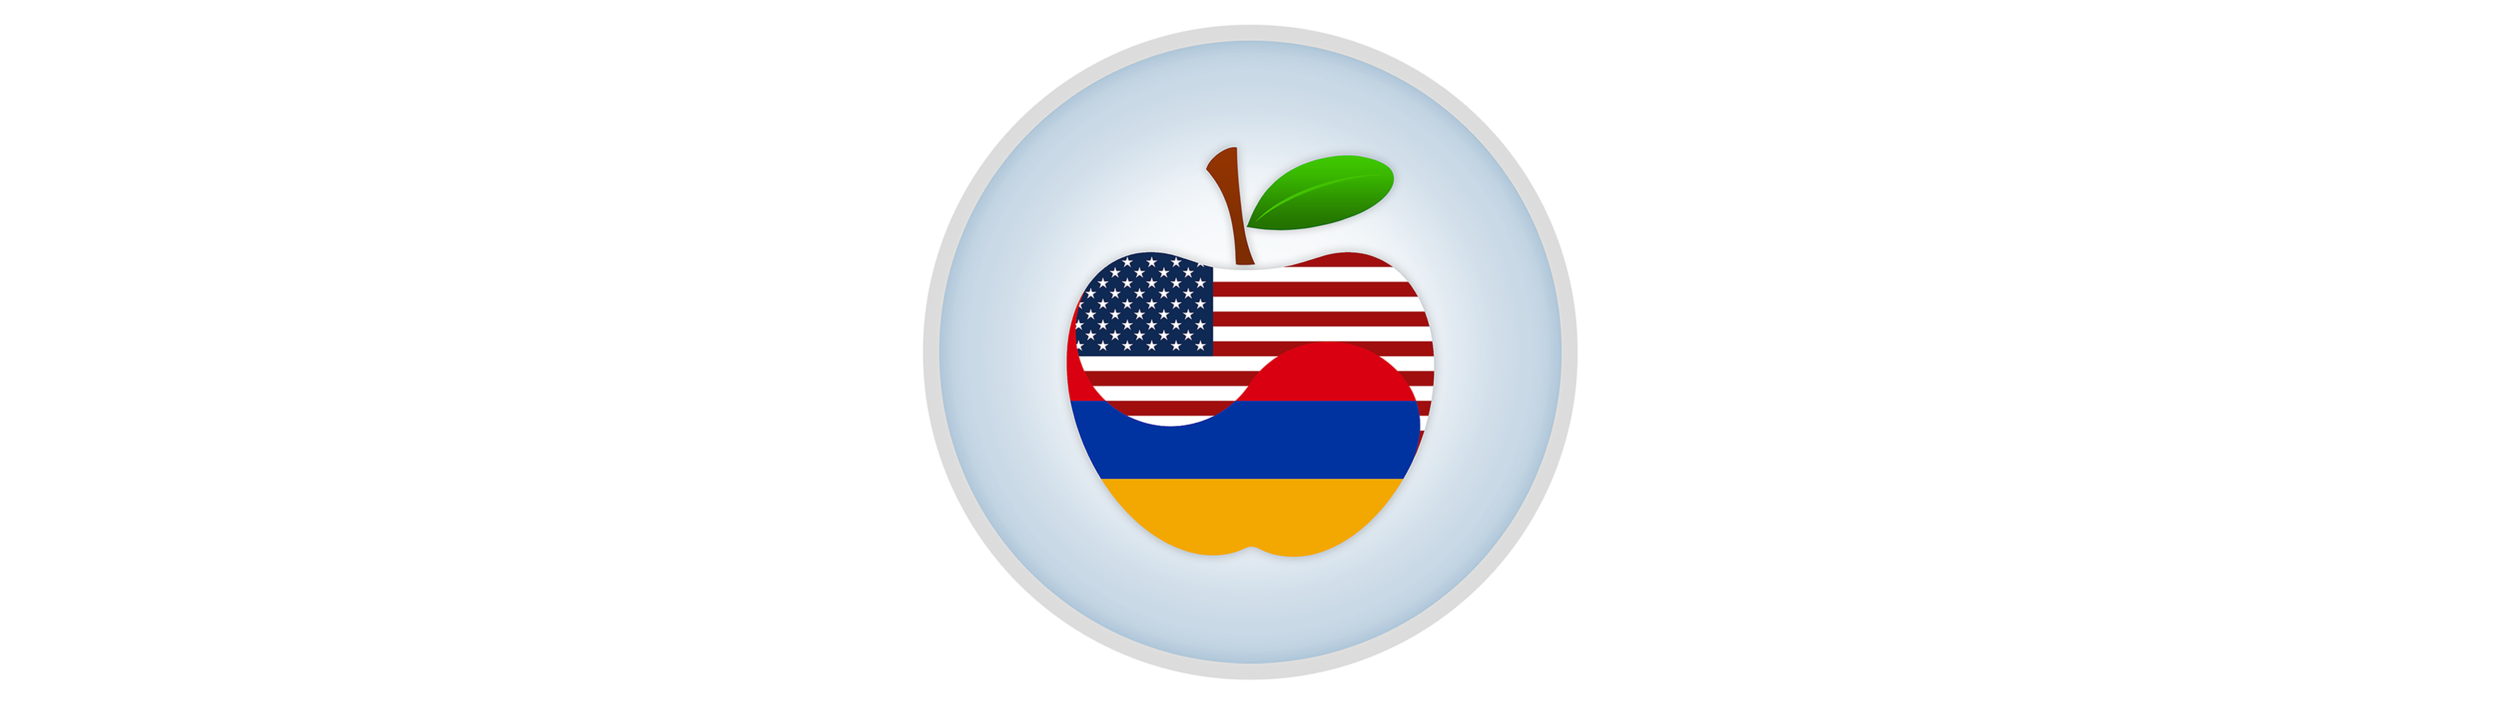 apple-tree-learning-center-glendale-news-17.png